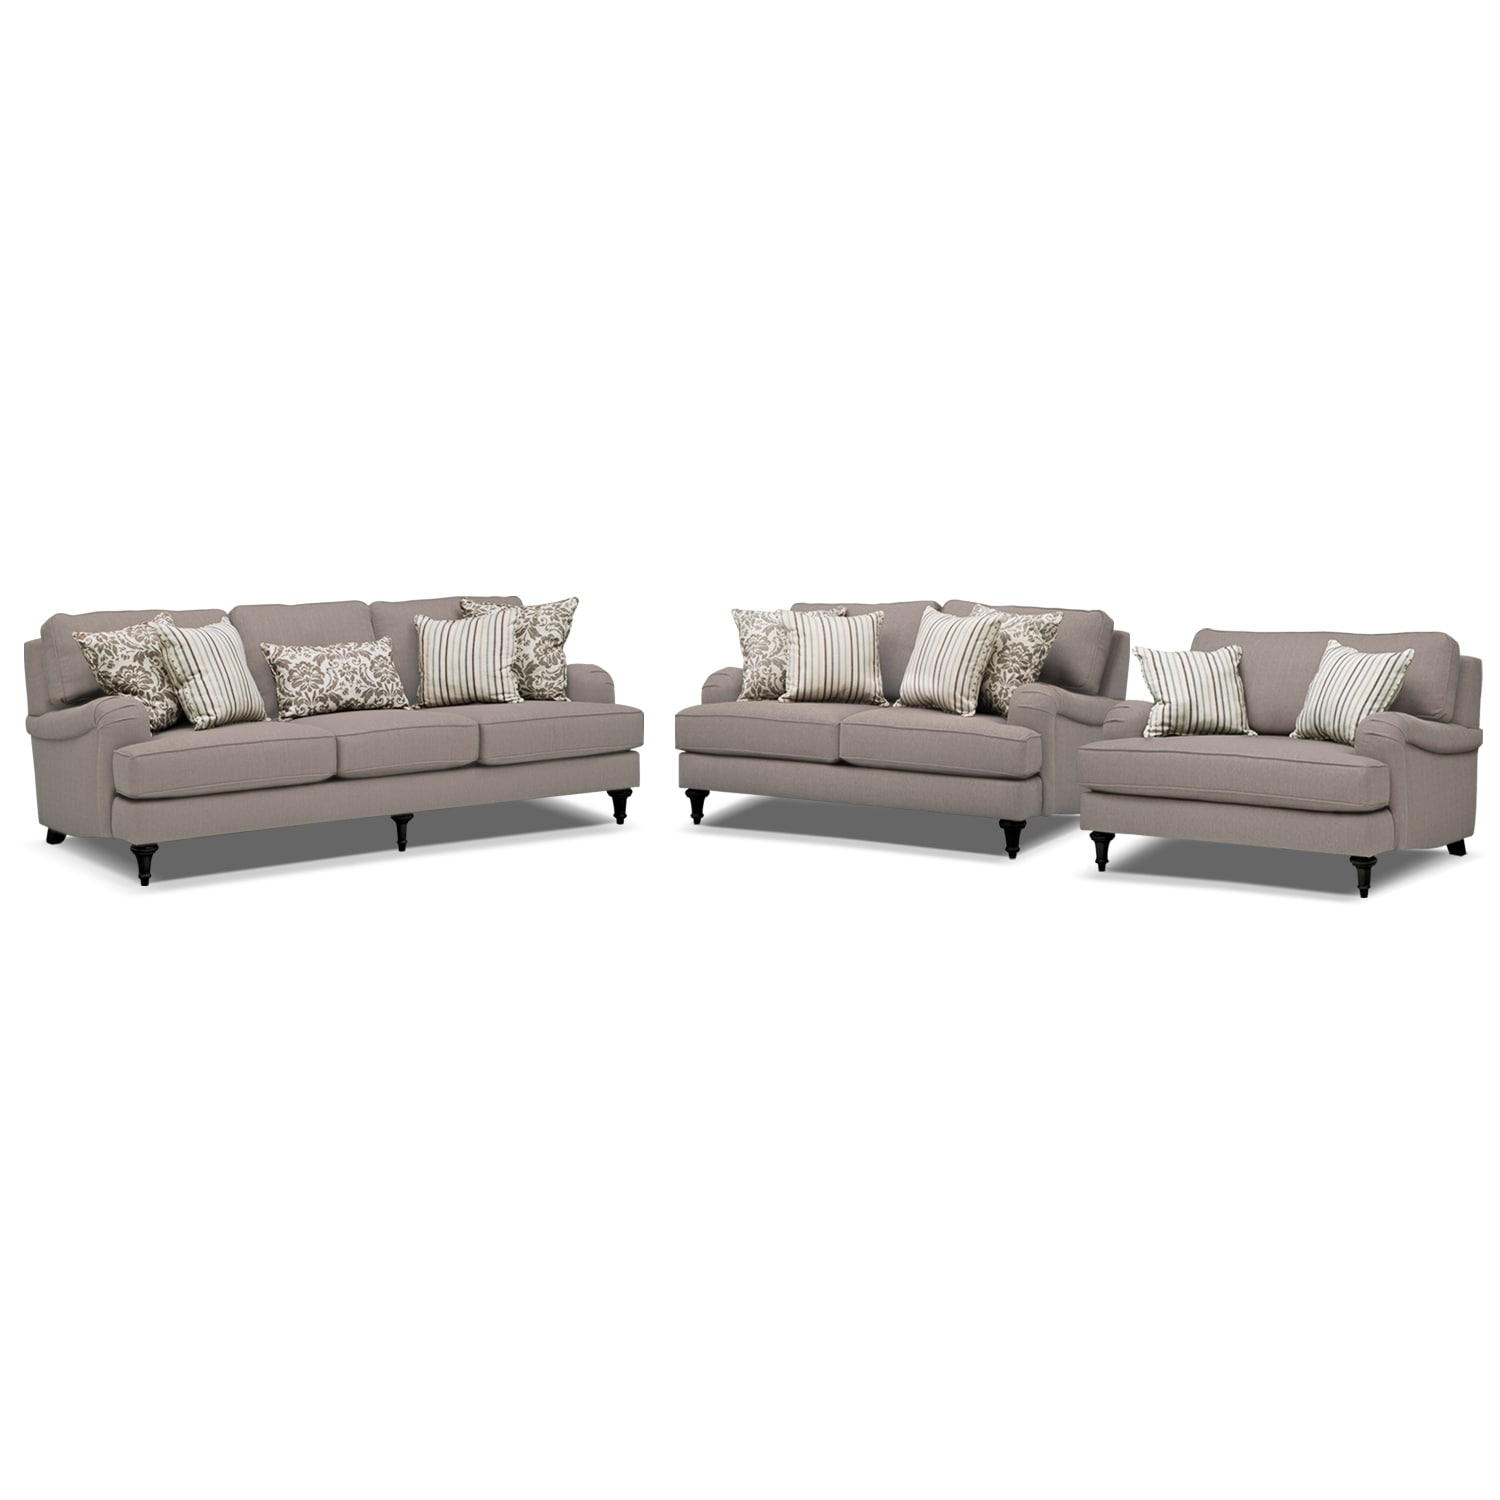 Living Room Furniture - Candice 3 Pc. Living Room